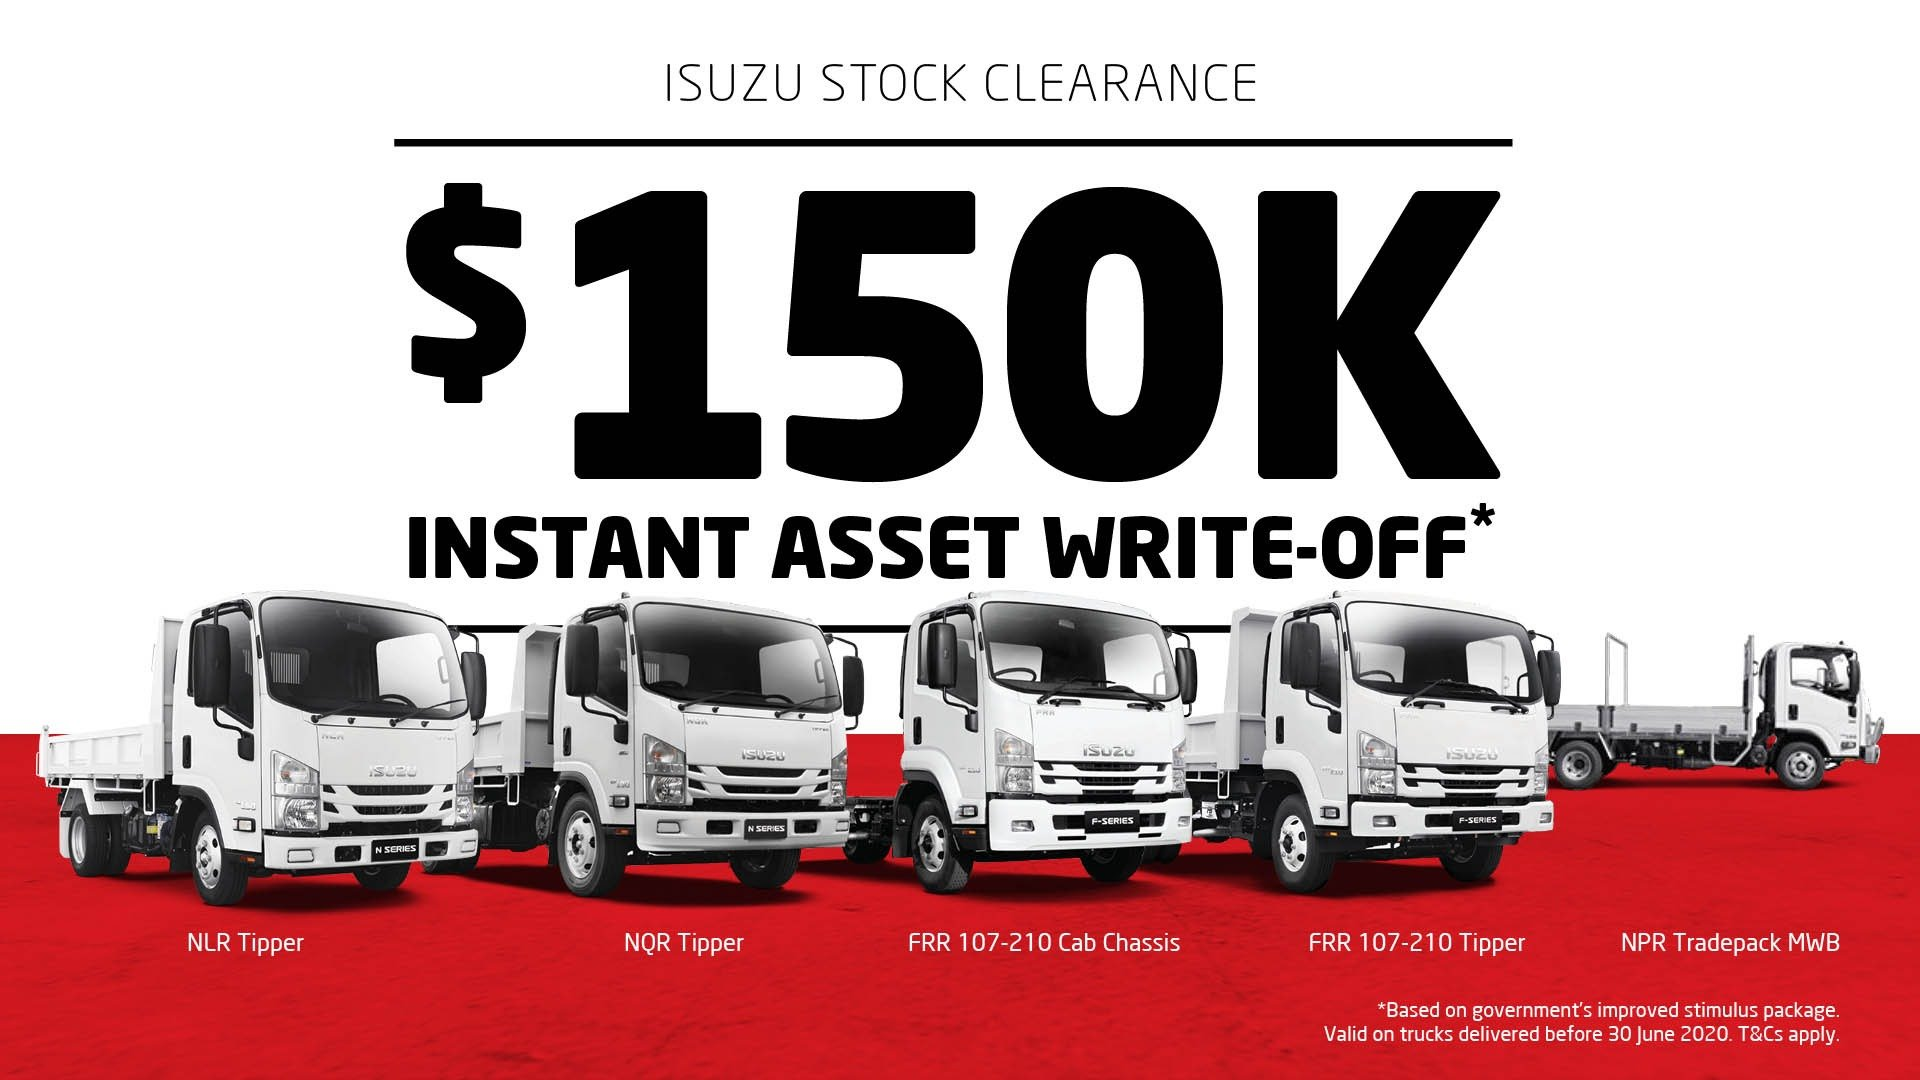 Patterson Cheney Isuzu stock clearance